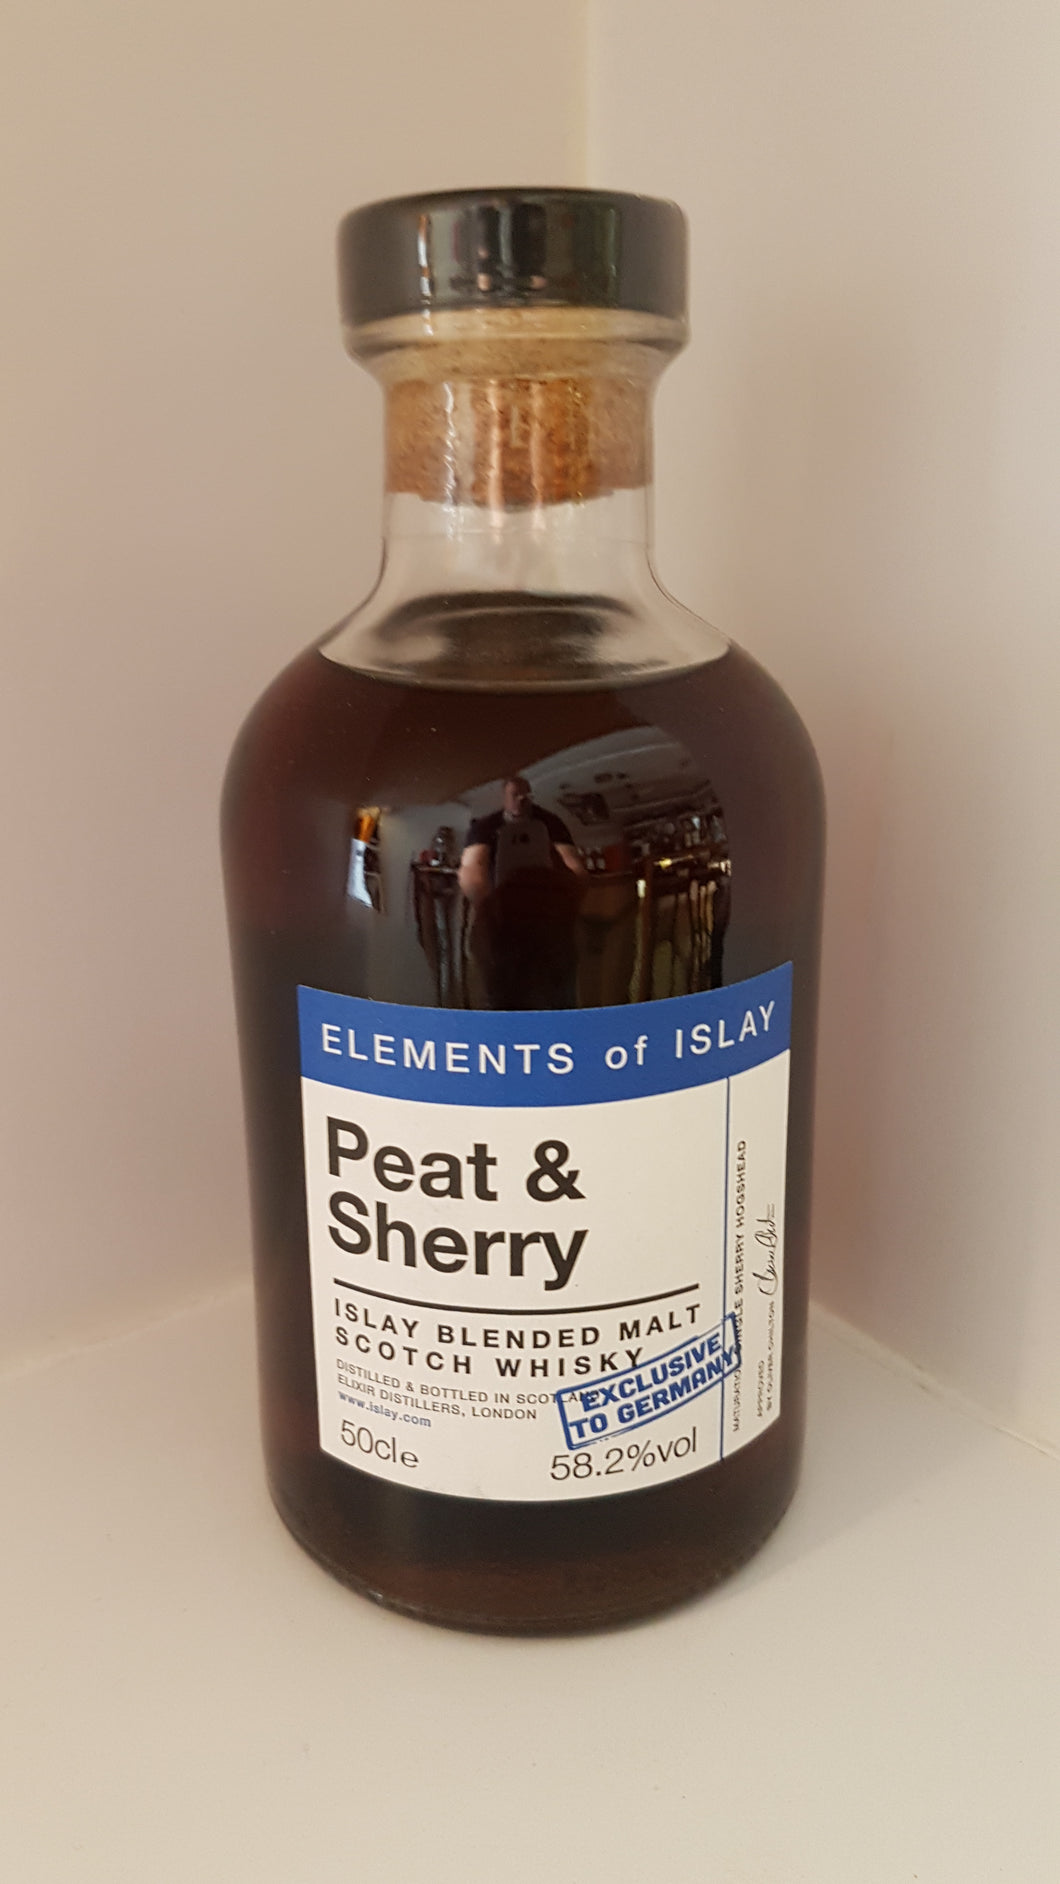 Elements of islay Peat & sherry Islay blend scotch whisky 0.5l 58.2 %